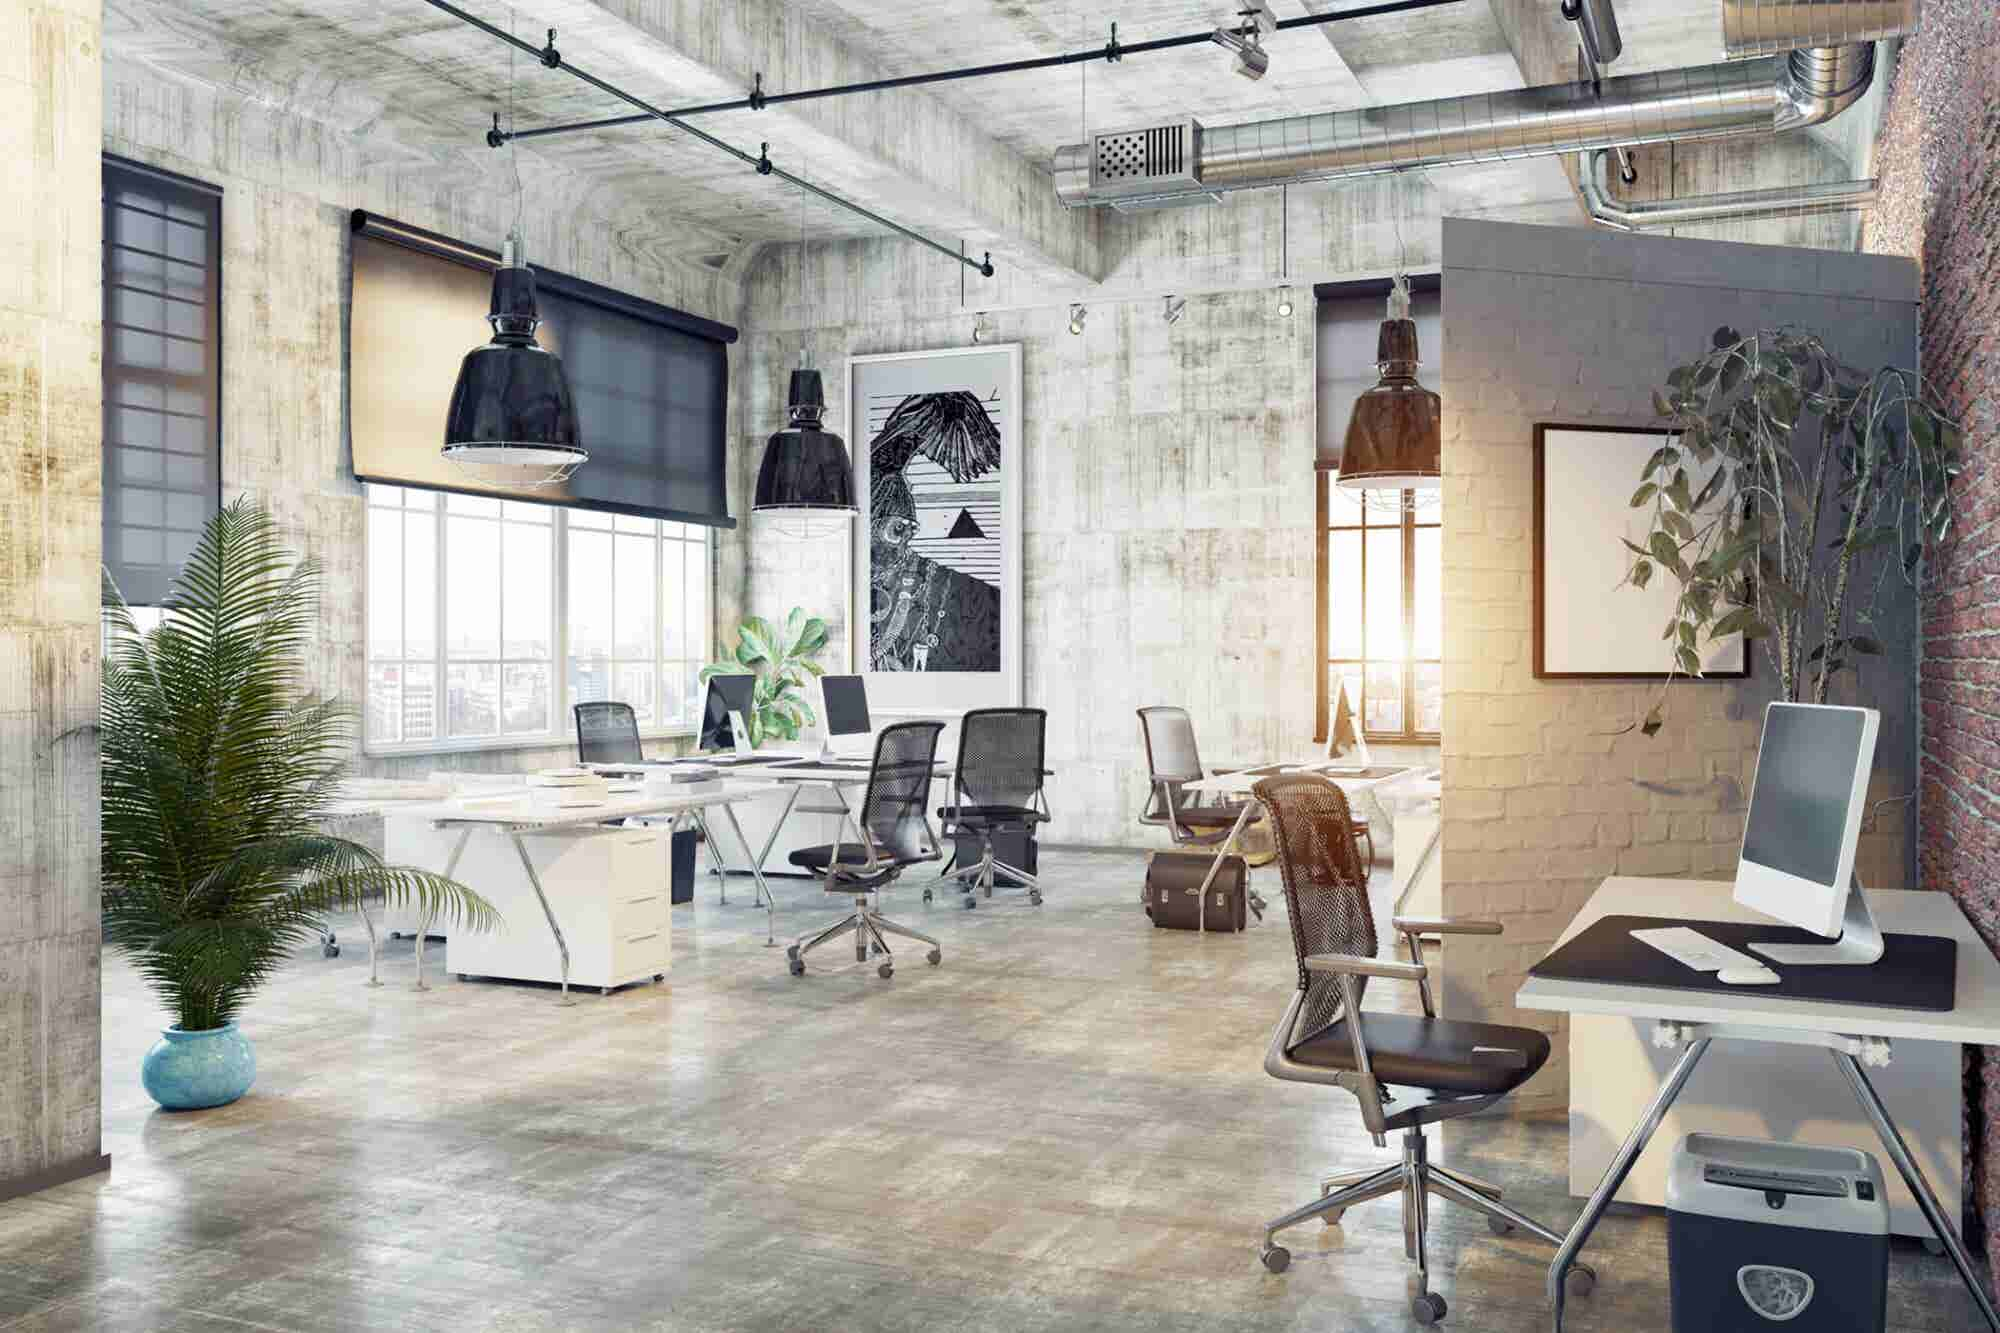 'Virtual Co-Working Spaces' Are Going to Be Part of the Near-Future's...